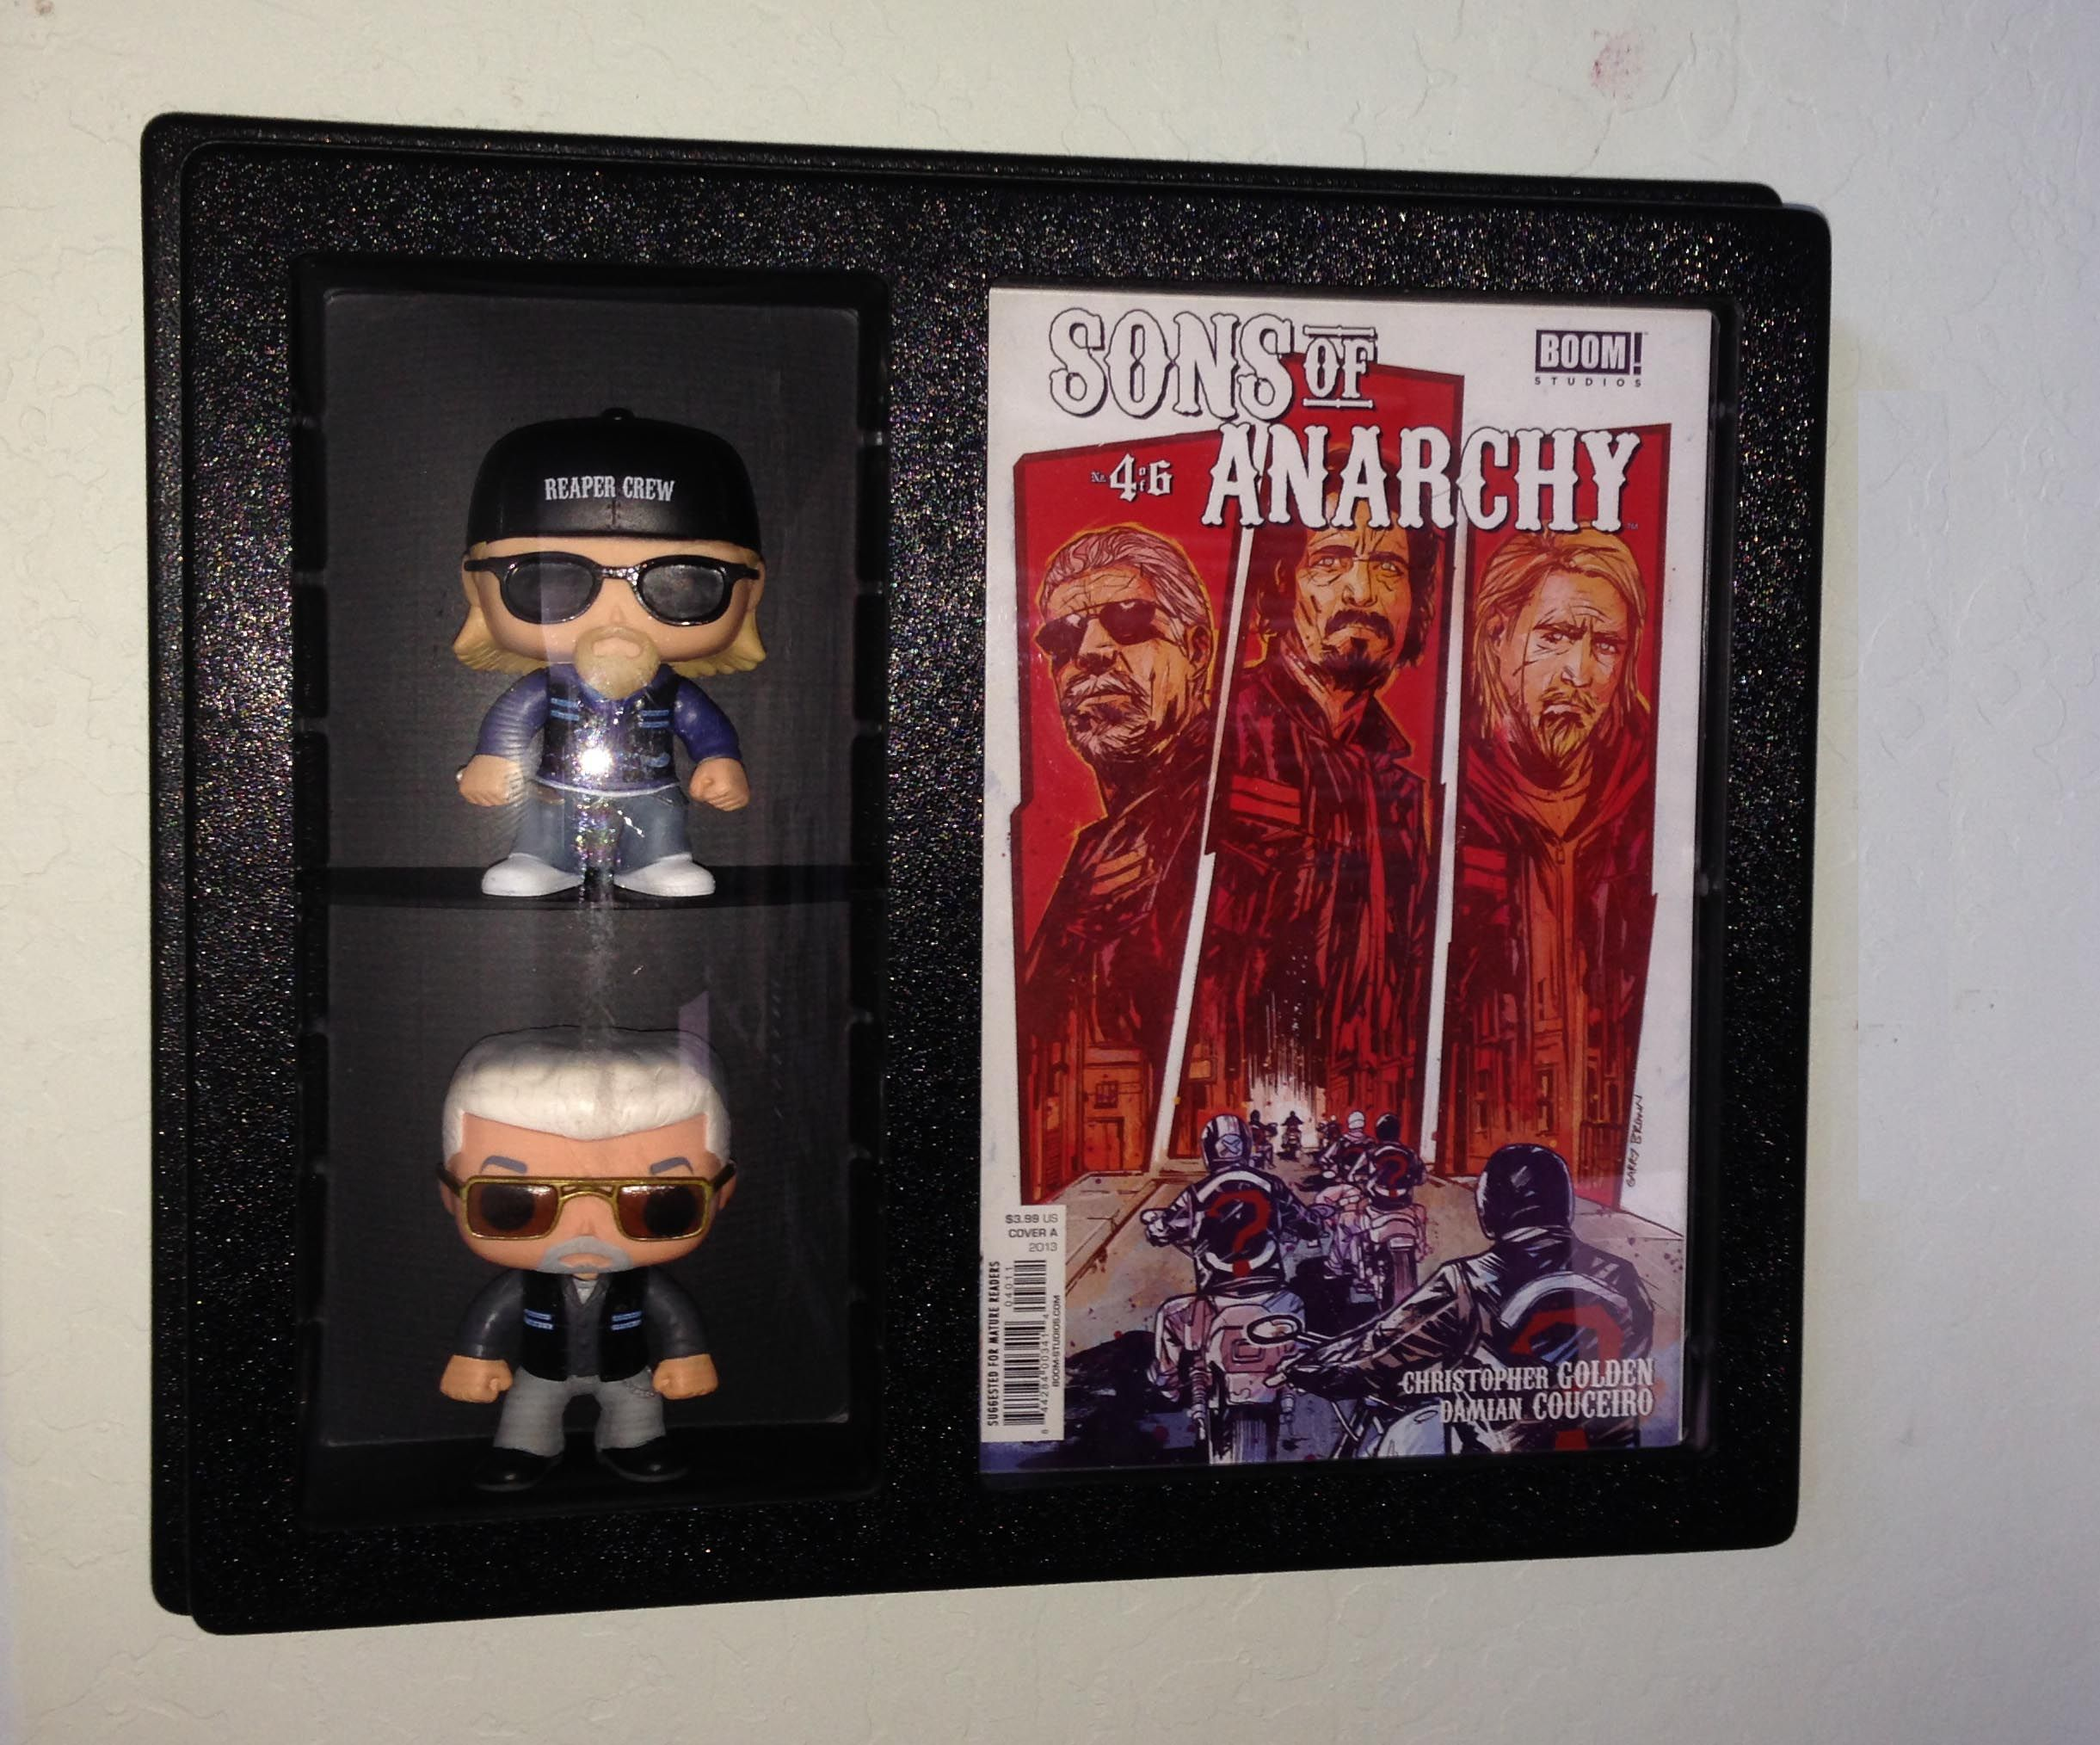 Comic Book With Action Figure Display Go Adjustable Shelf For Up